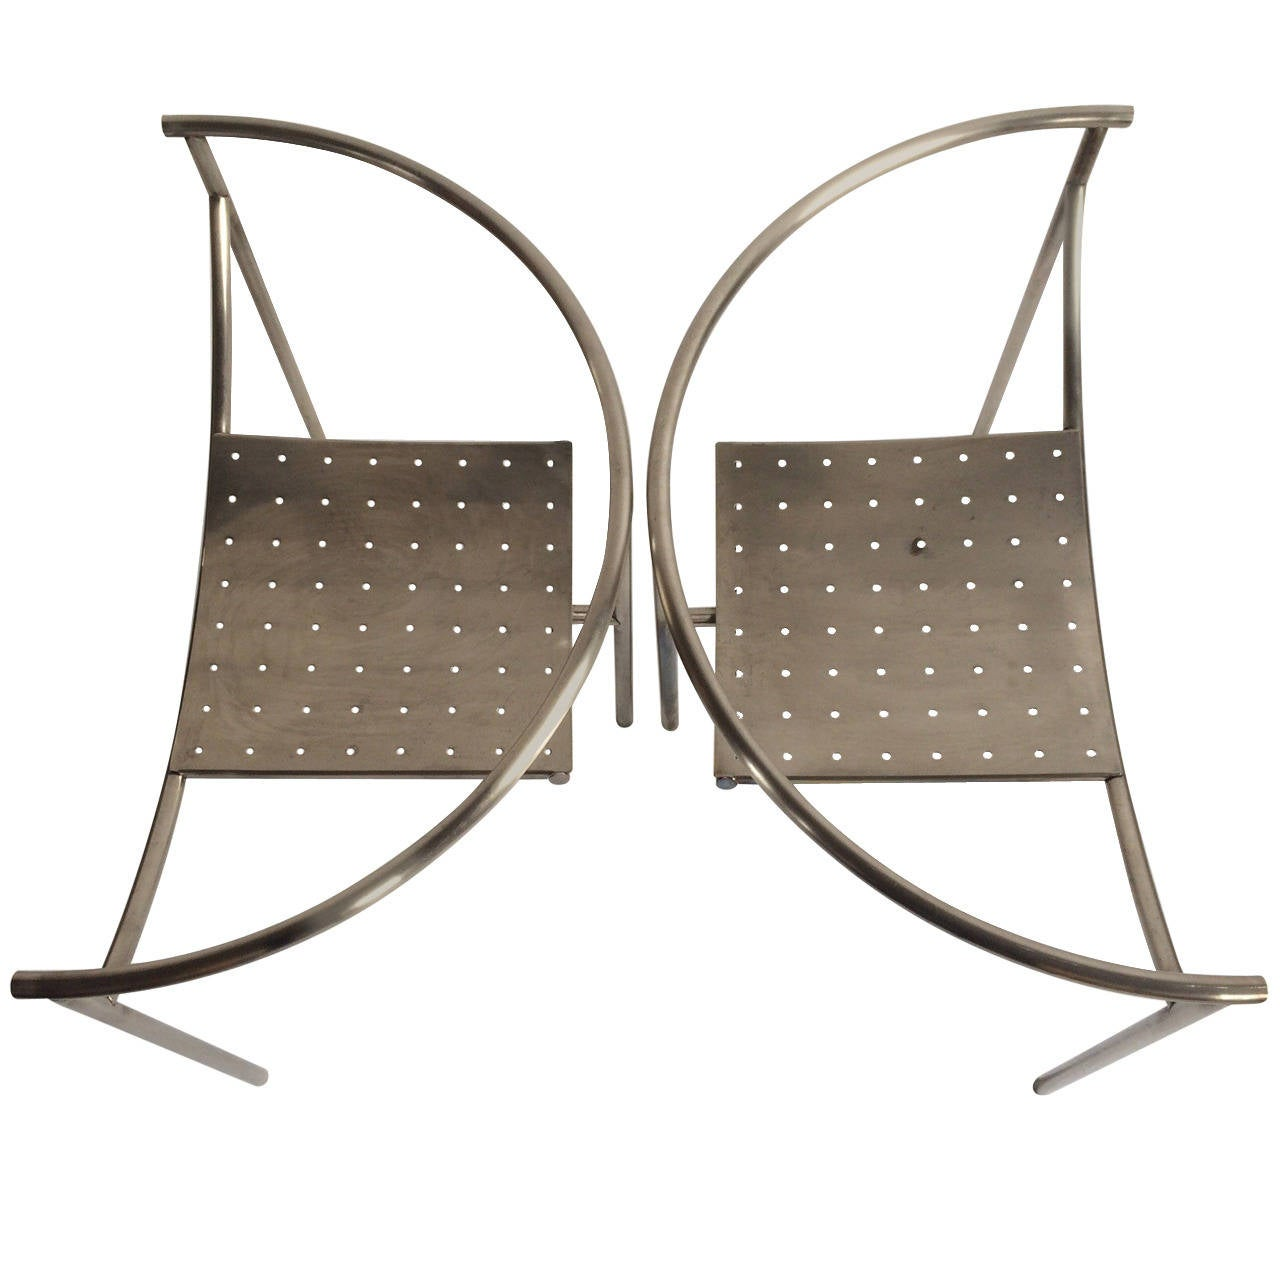 Quot Dr Sonderbar Quot Chairs Philippe Starck At 1stdibs